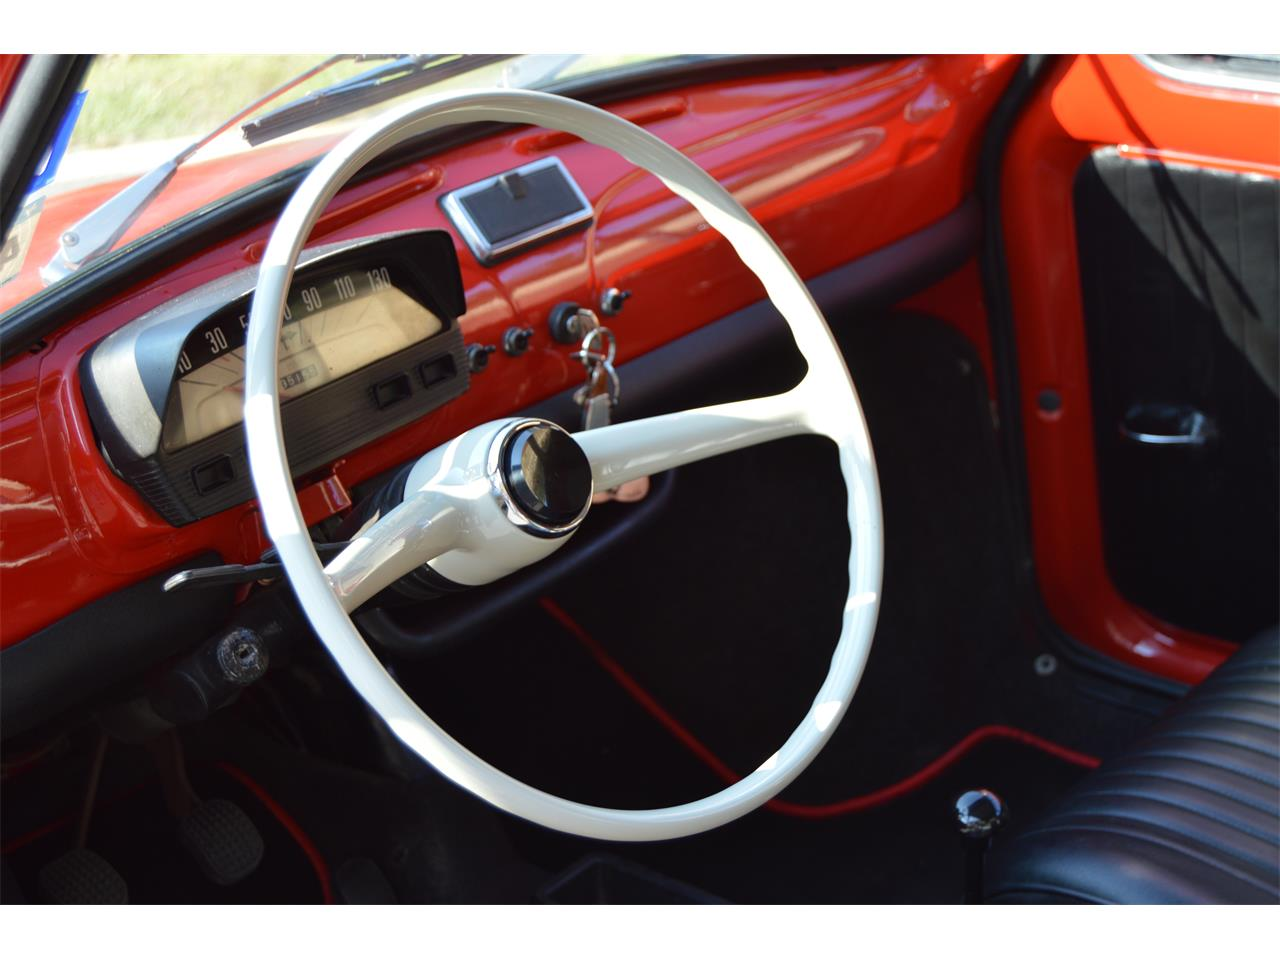 Large Picture of Classic 1970 Fiat Cinquecento - $24,000.00 Offered by LT Car Holding - GJO4